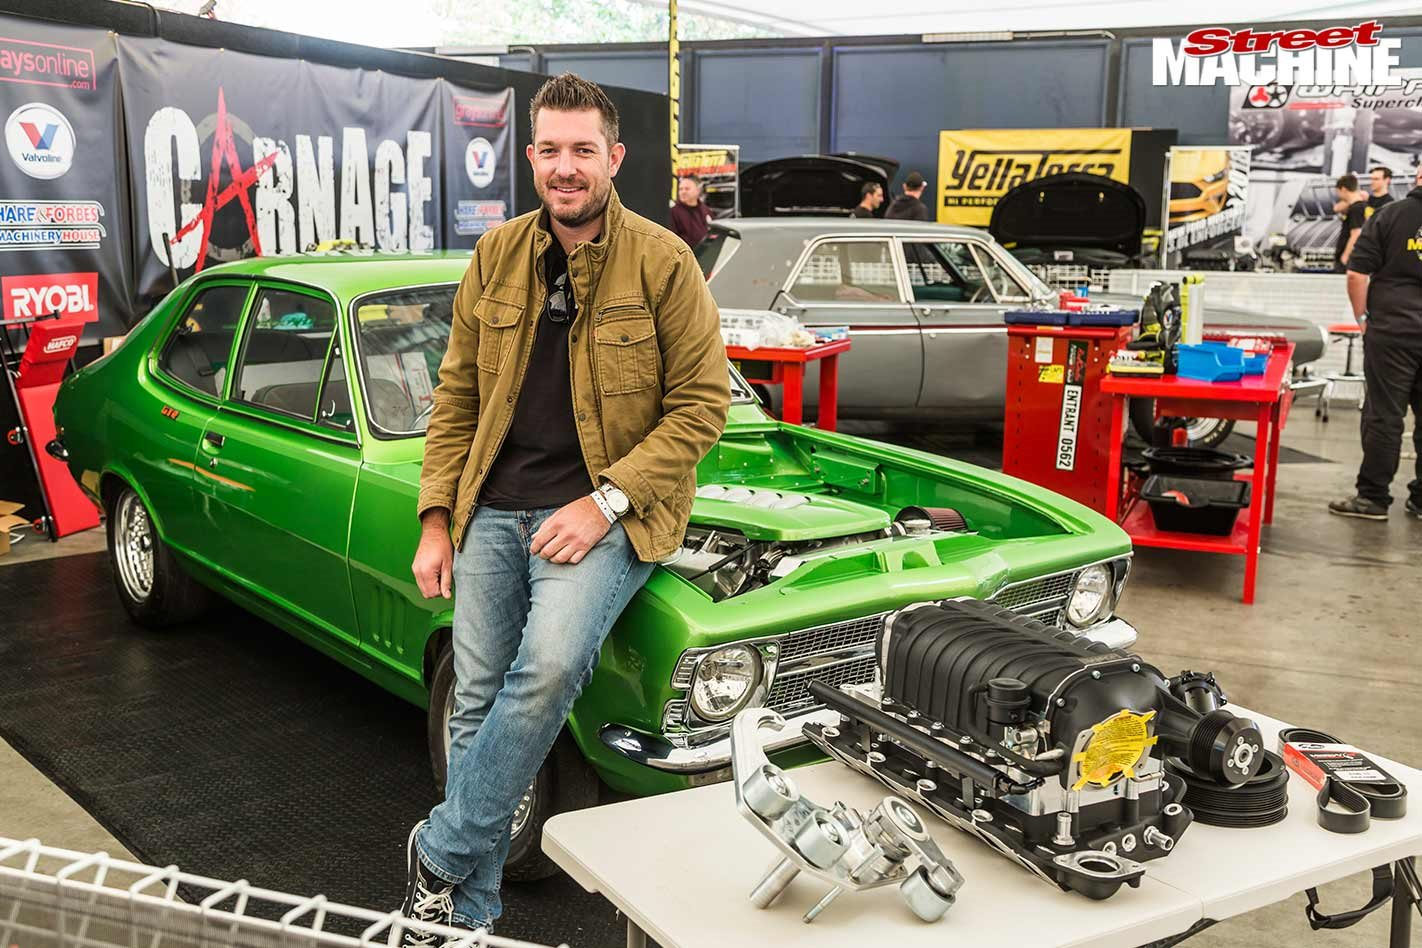 Installing a supercharger package to a Holden LC GTR Torana